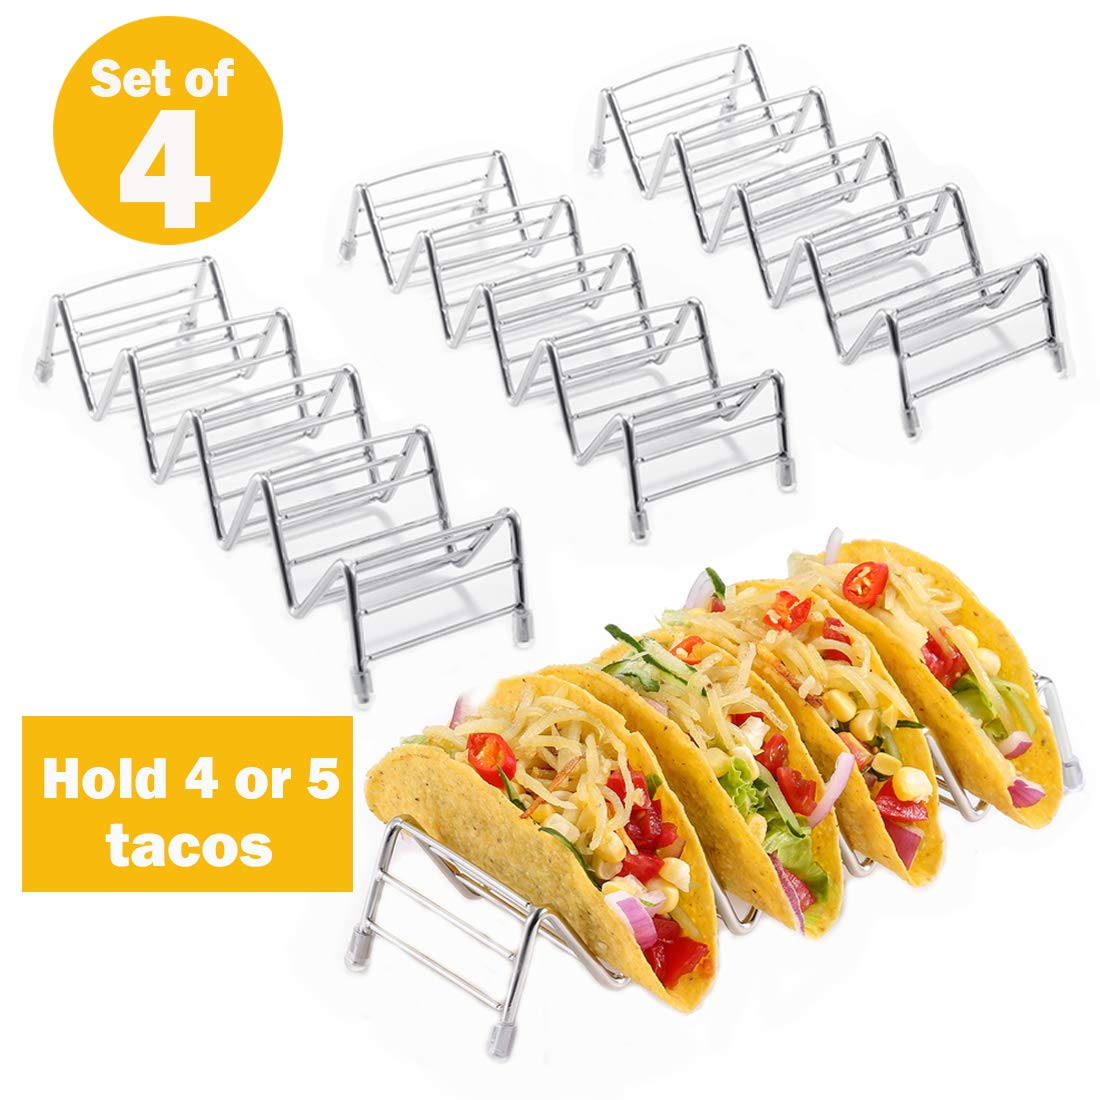 Taco Holder, Taco Rack Holders ,Good Taco Shell Holder Stand on Table , Hold 4 or 5 Hard or Soft Shell Tacos, Safe for Baking taco Truck Tray- Set of 4 by LifeEase